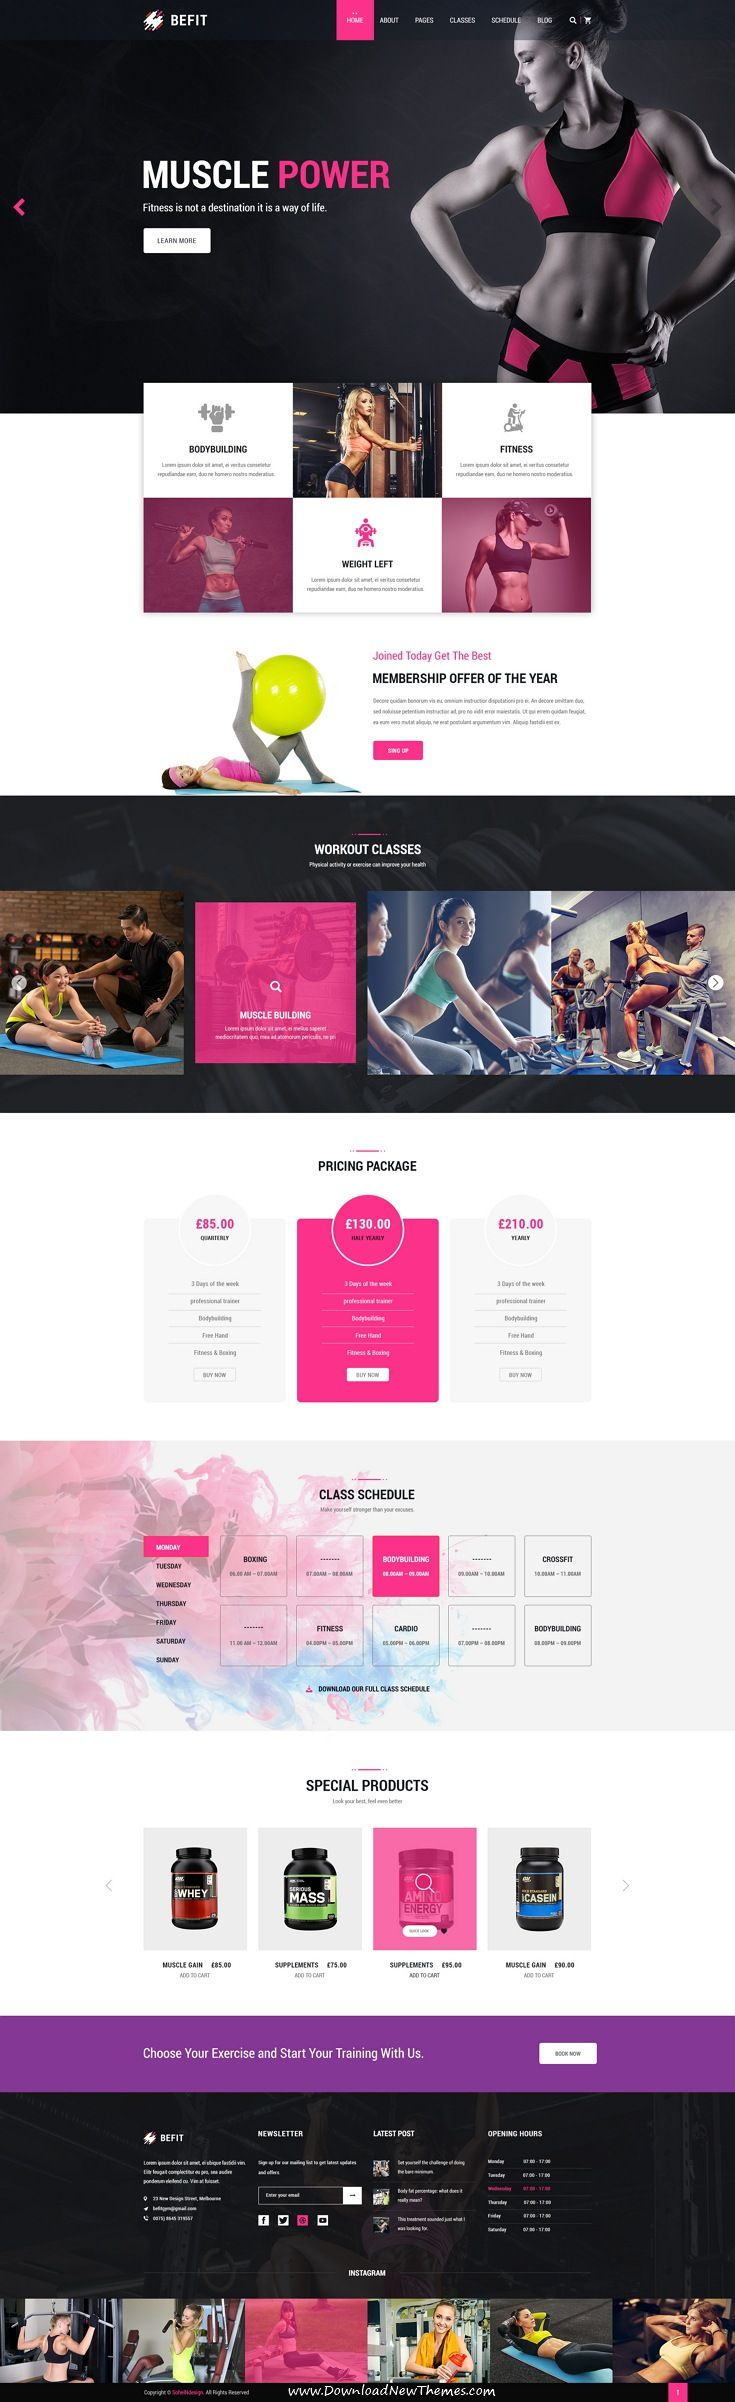 Befit  Gym  Fitness Psd Template  Fitness Centers Psd